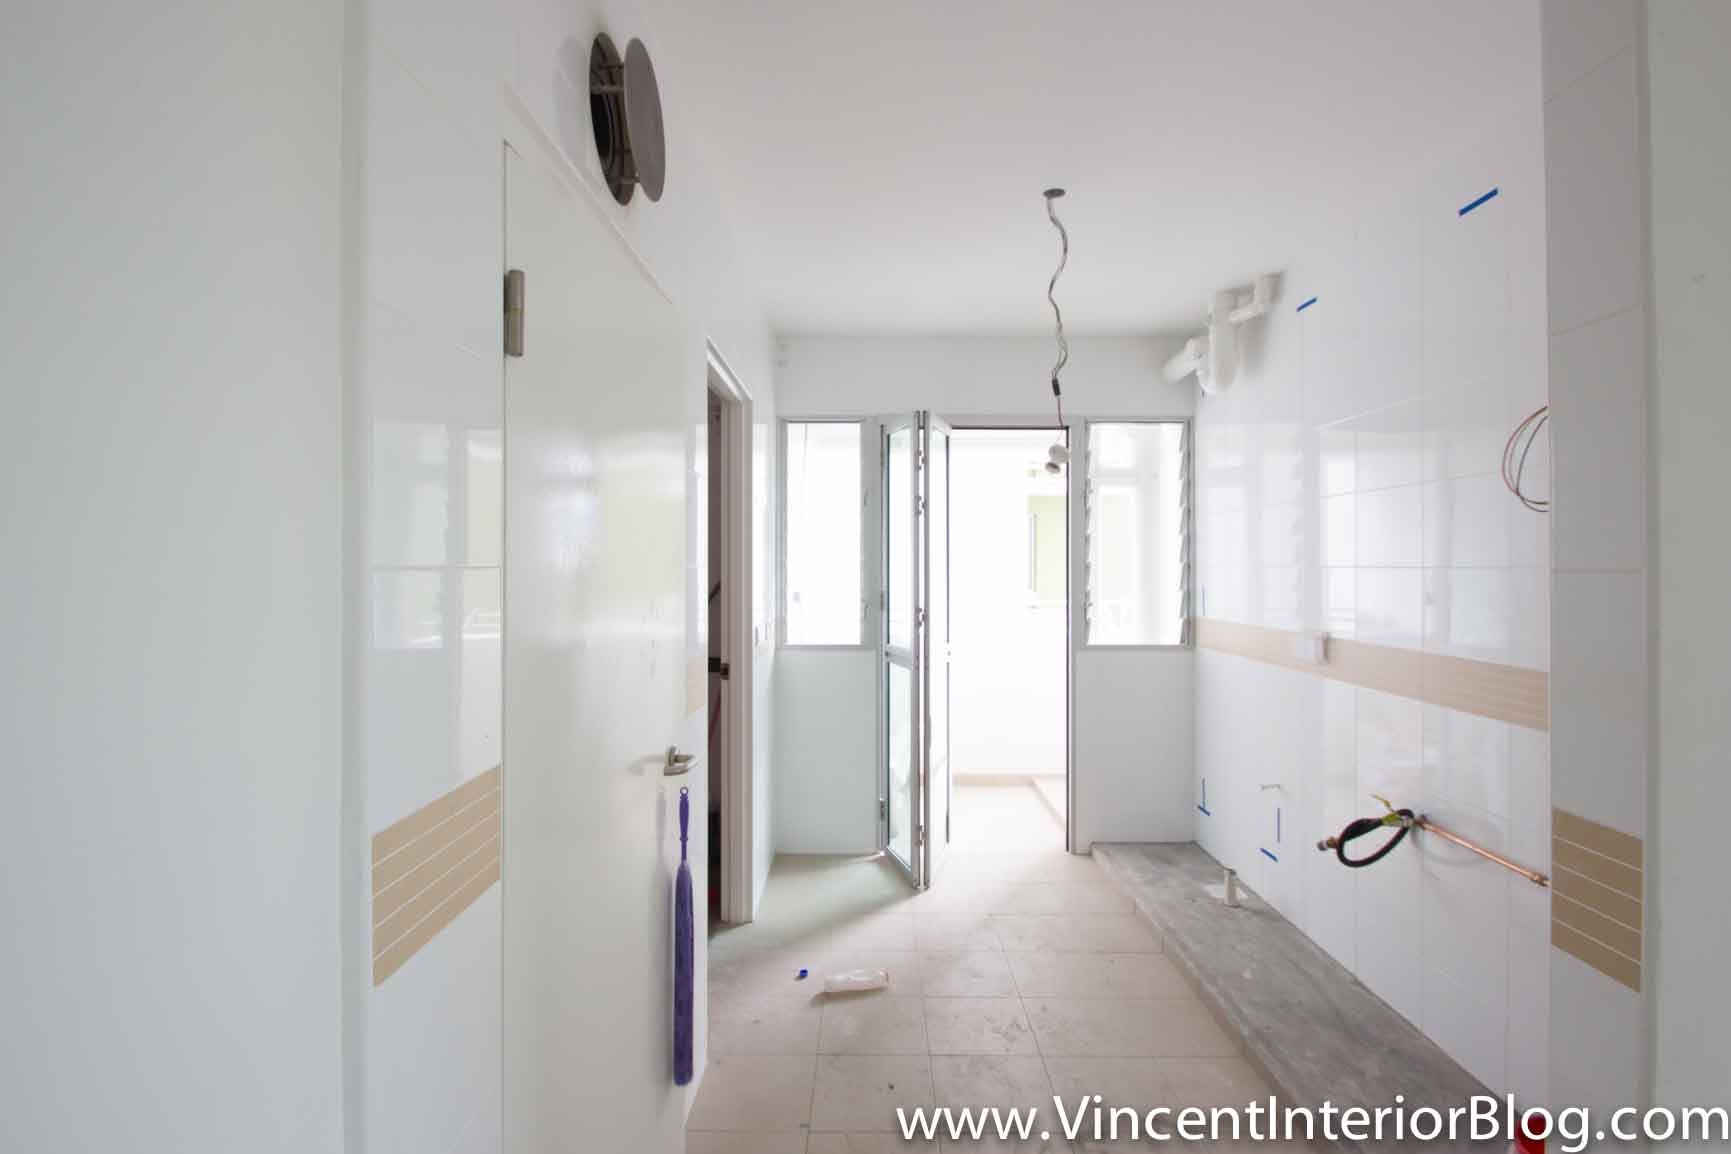 3 Room Hdb Sengkang West Way Kitchen 1 Vincent Interior Blog Vincent Interior Blog